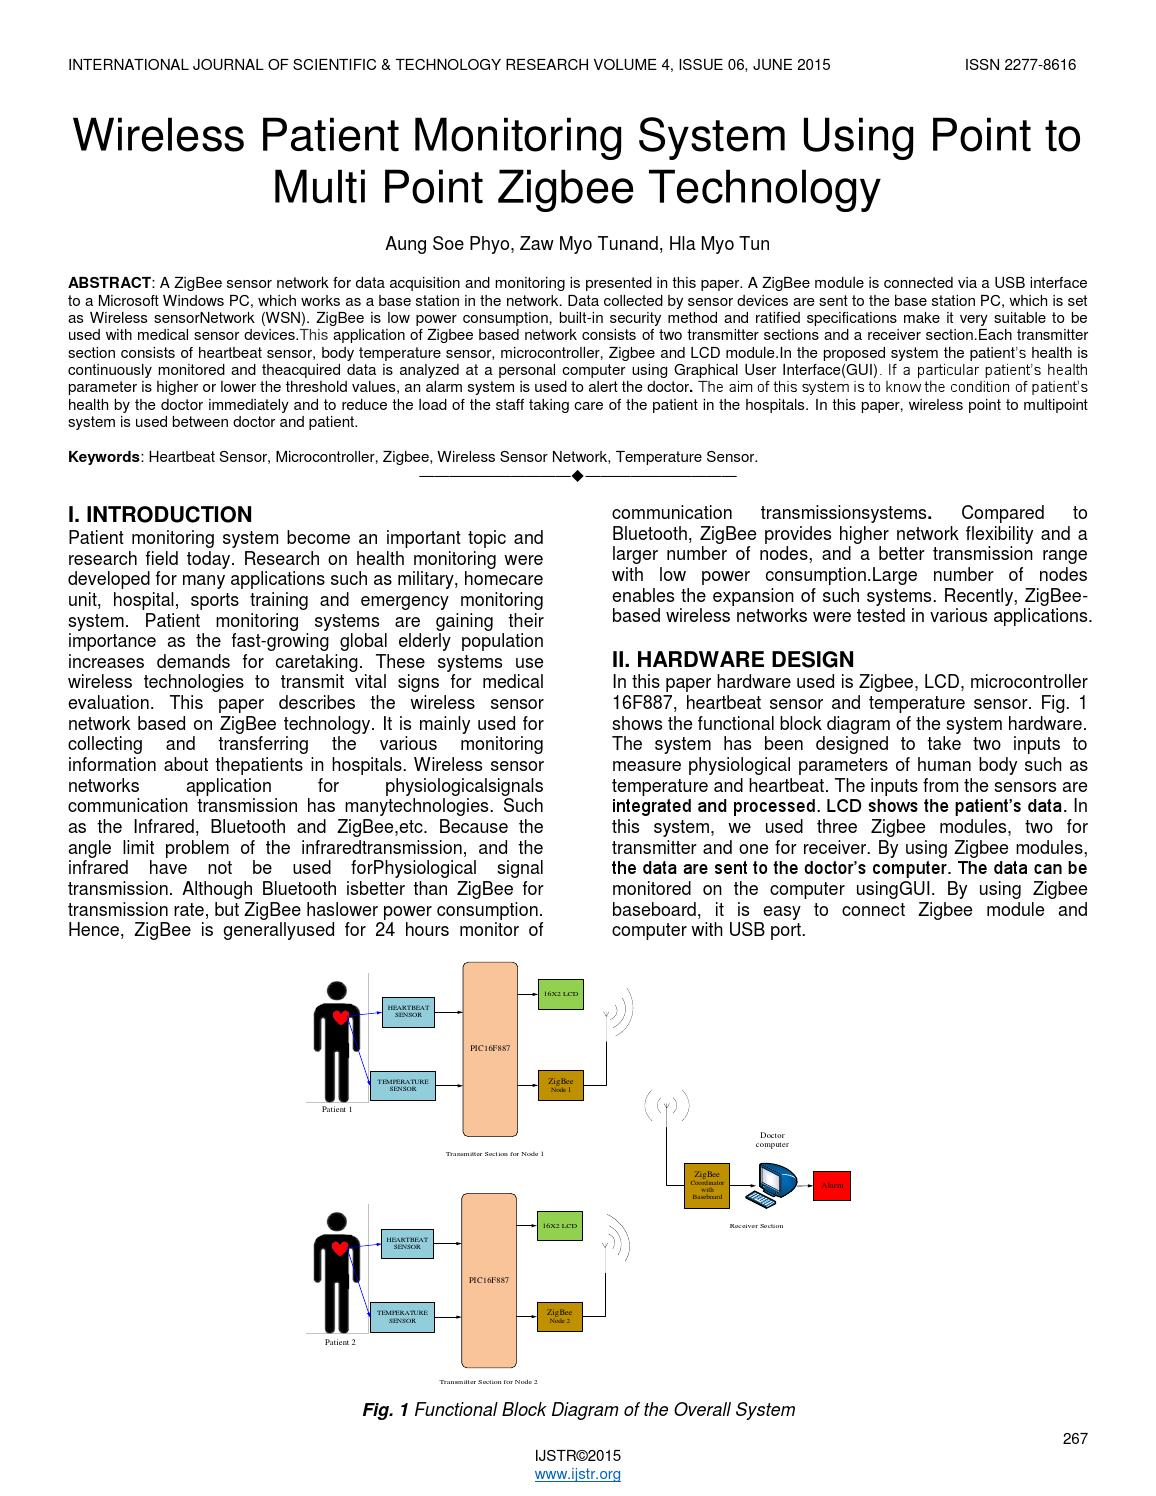 wireless electronic notice board with multipoint receiver using zigbee